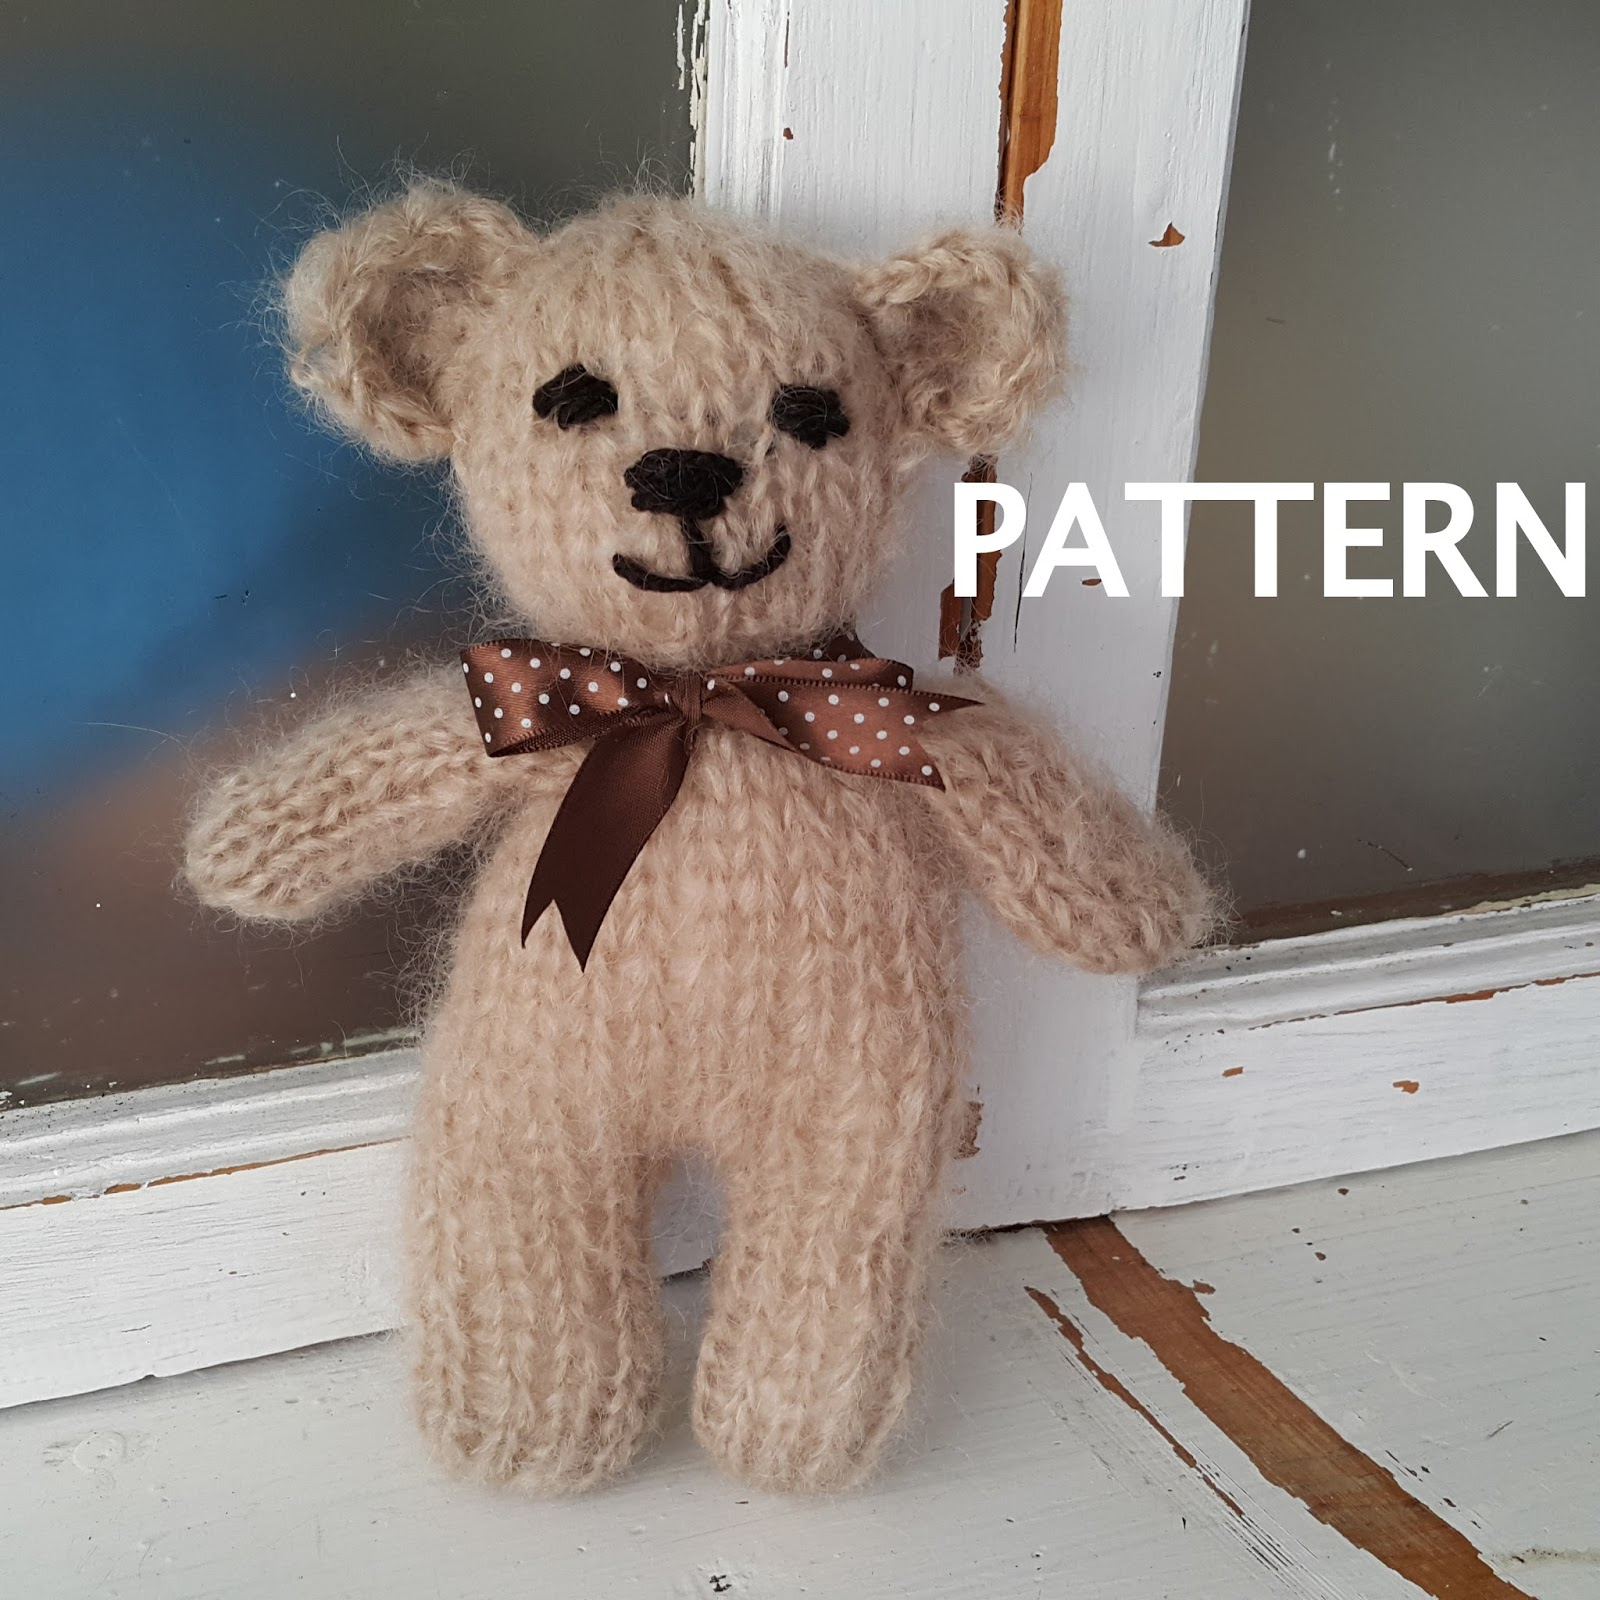 Knitting Pattern For All In One Teddy Bear : Crafty Stuff Baby Knits and Photo Props: Knitting PATTERN for a Newborn Baby ...